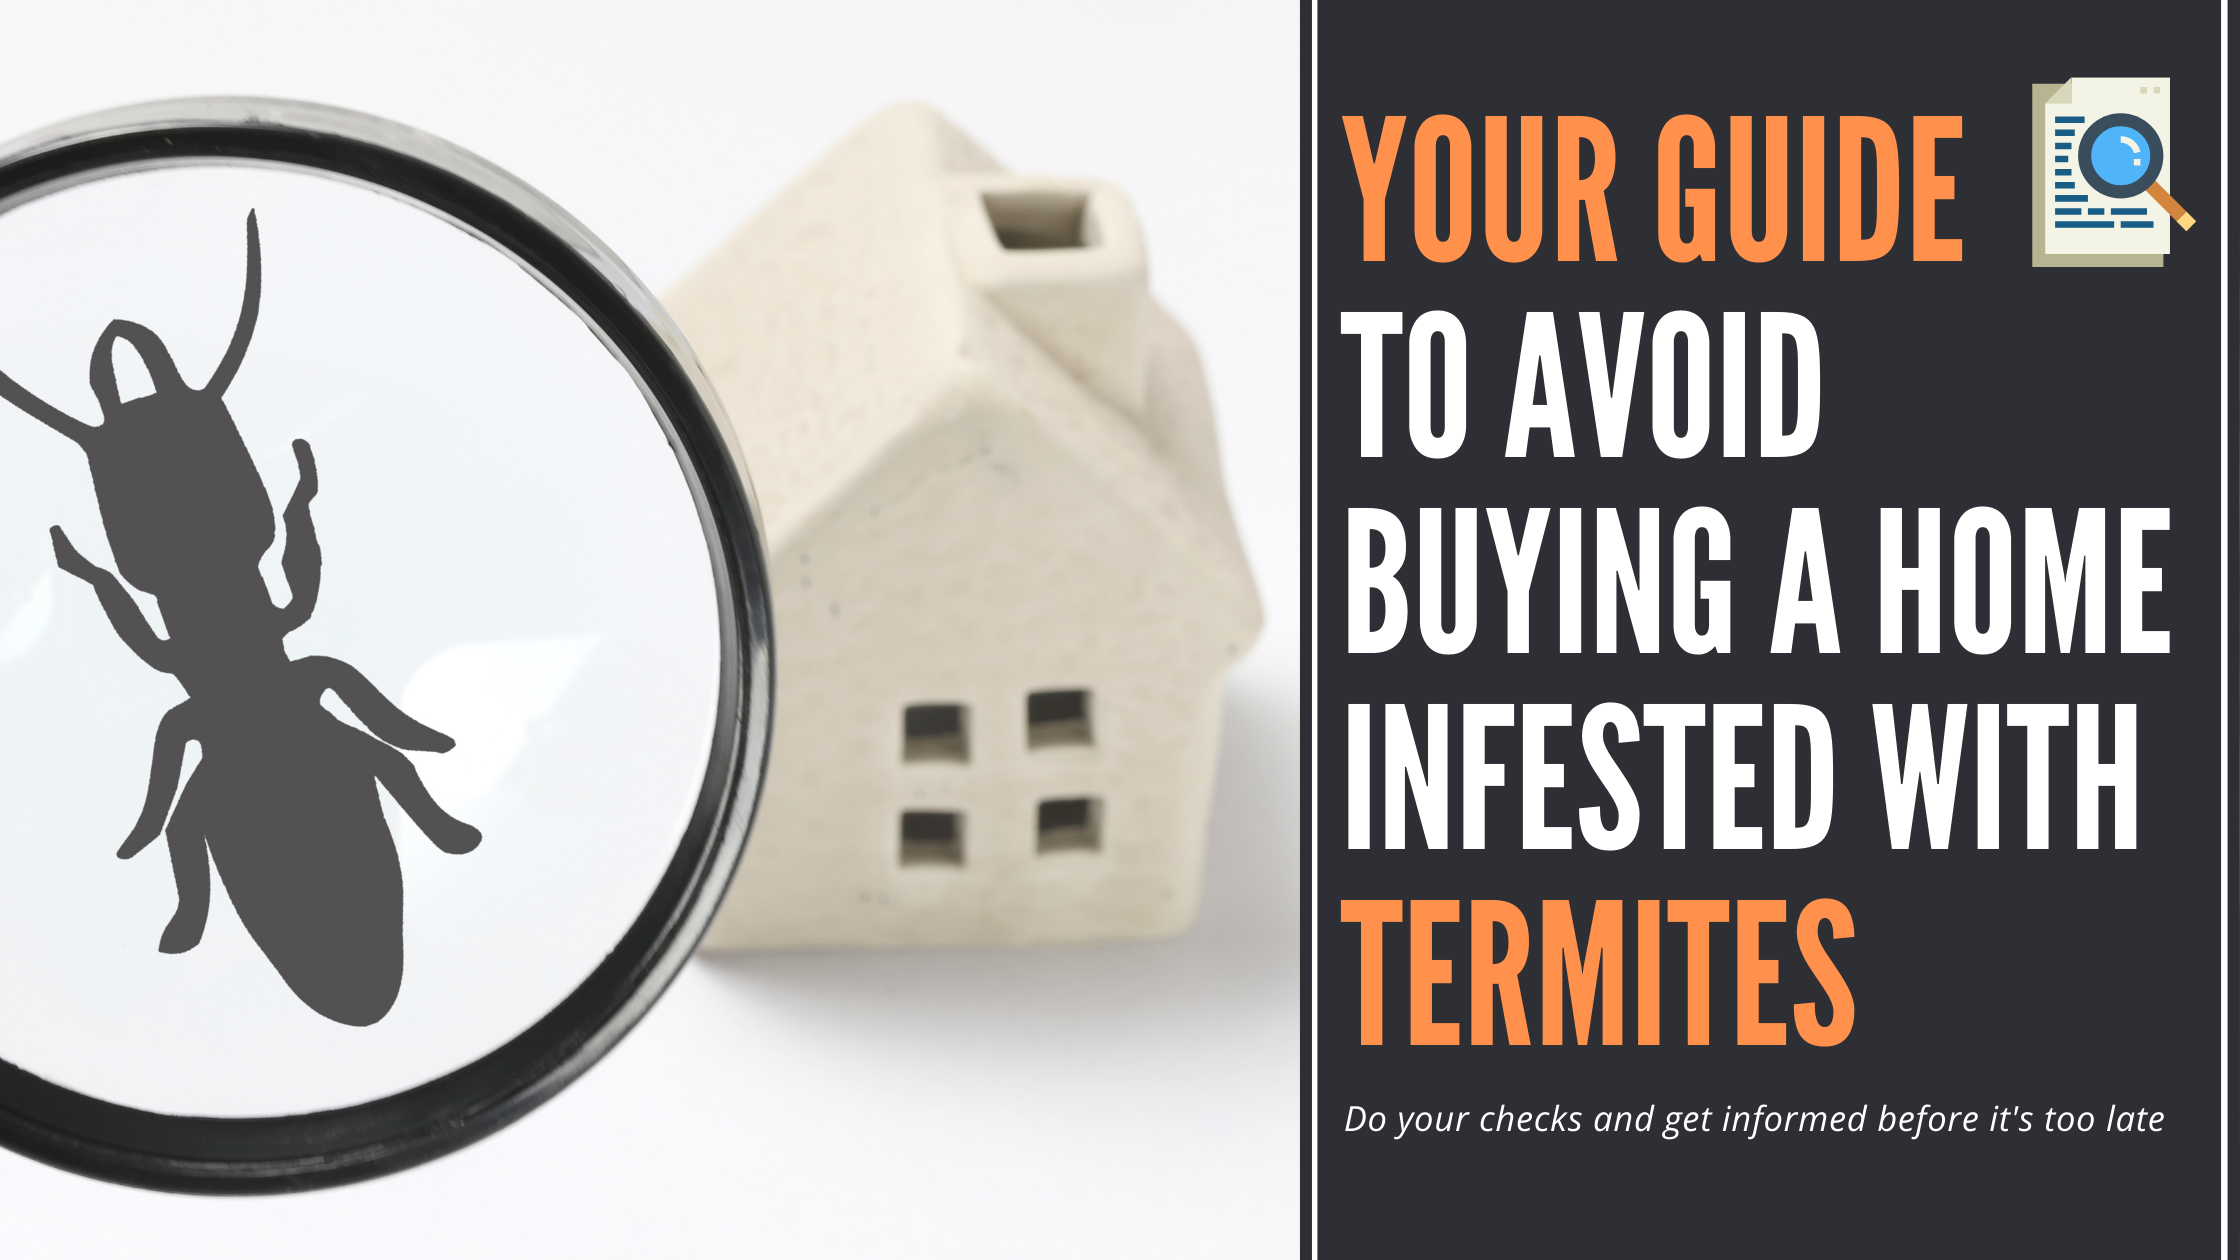 Avoid-buying-a-home-infested-with-termites blog article